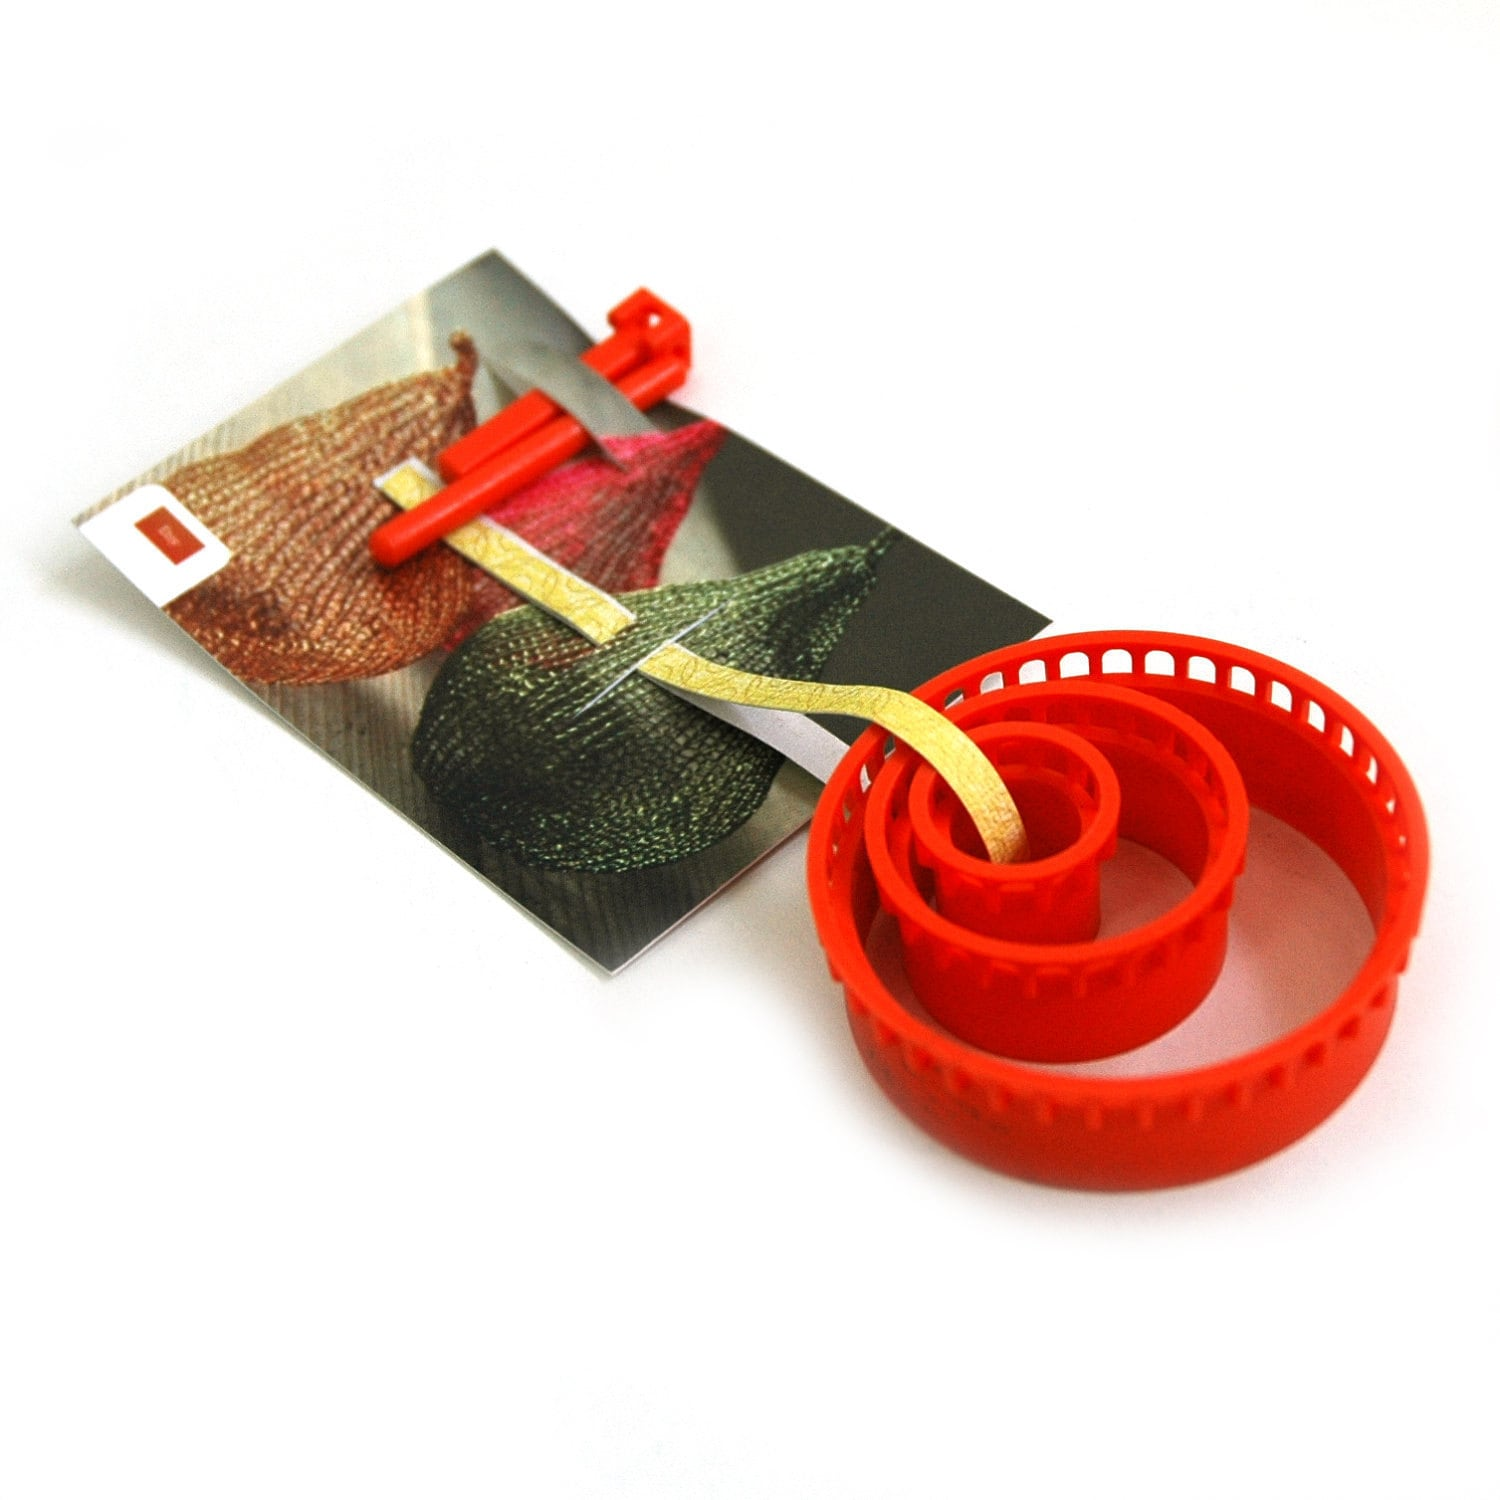 Knitting With Wire Book : Wire crochet tool isk invisible spool knitting starter